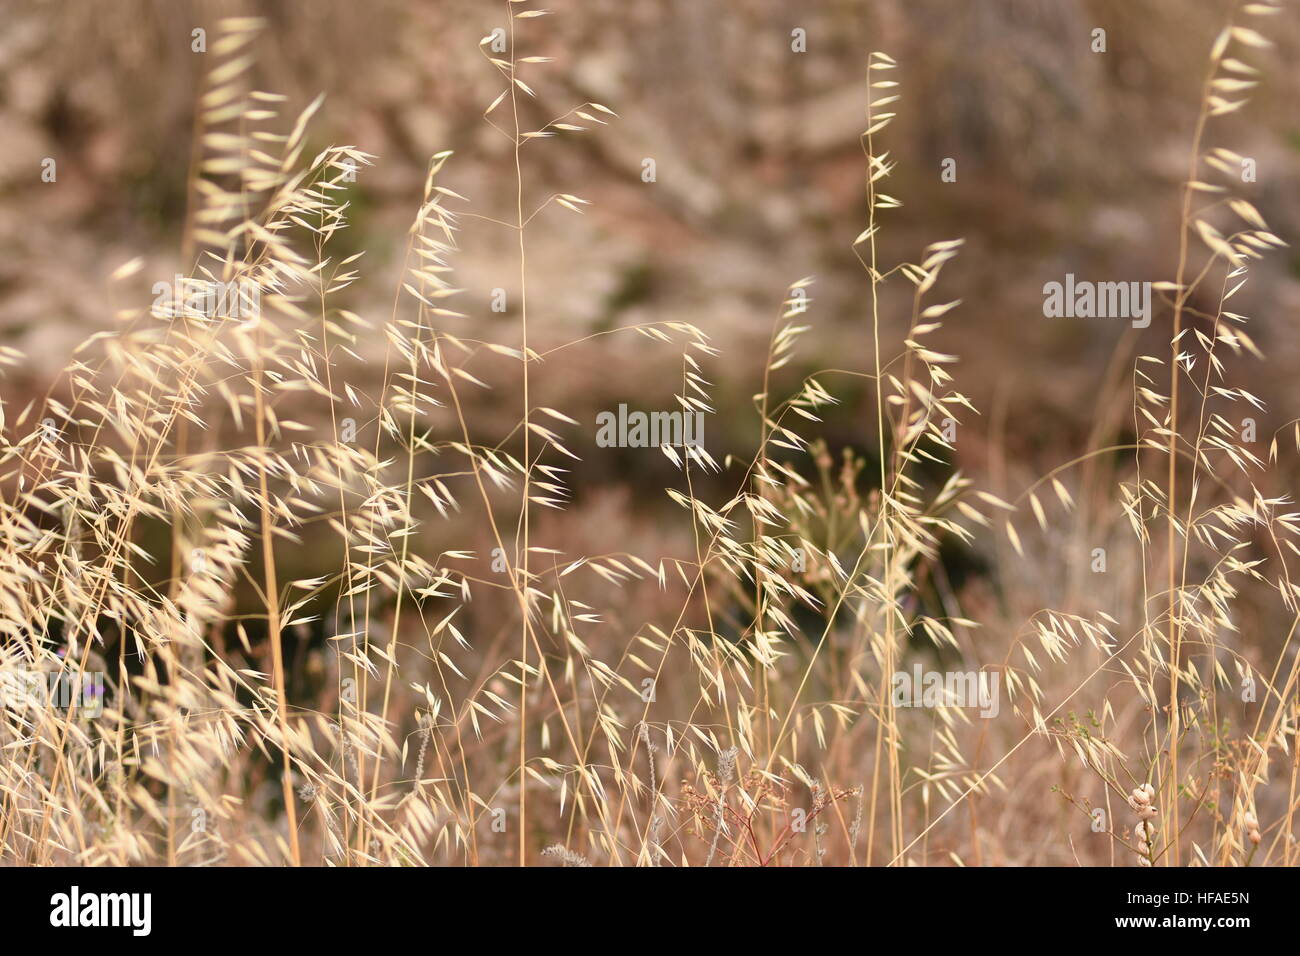 dry grass field background. Beautiful Field With Dry Grass And Wild Oats In Delicate Beige Golden Hues, Autumn Spring Landscape, Wallpaper, Background